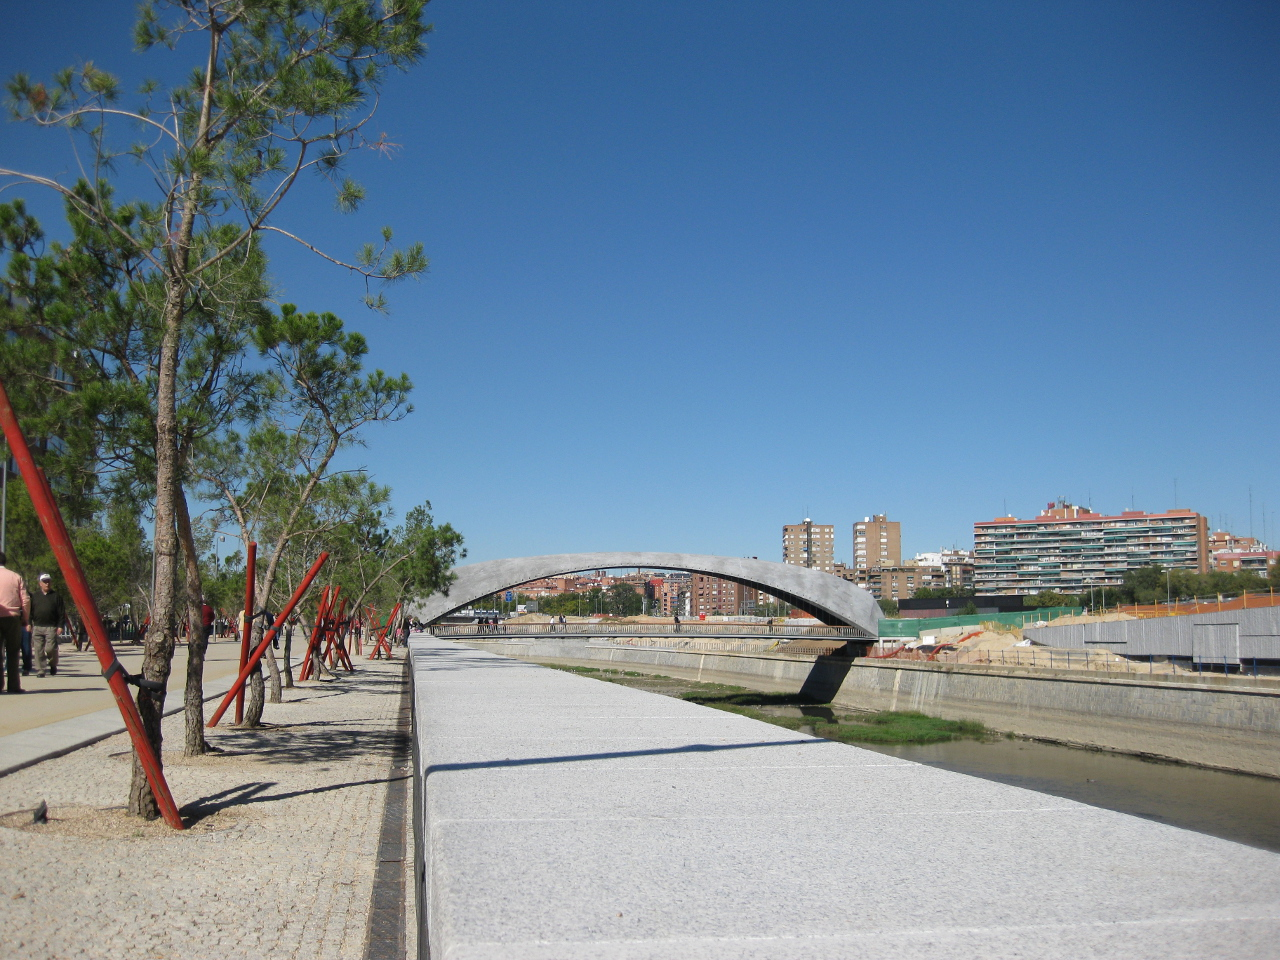 Madrid's Puentes Cascaras by West 8